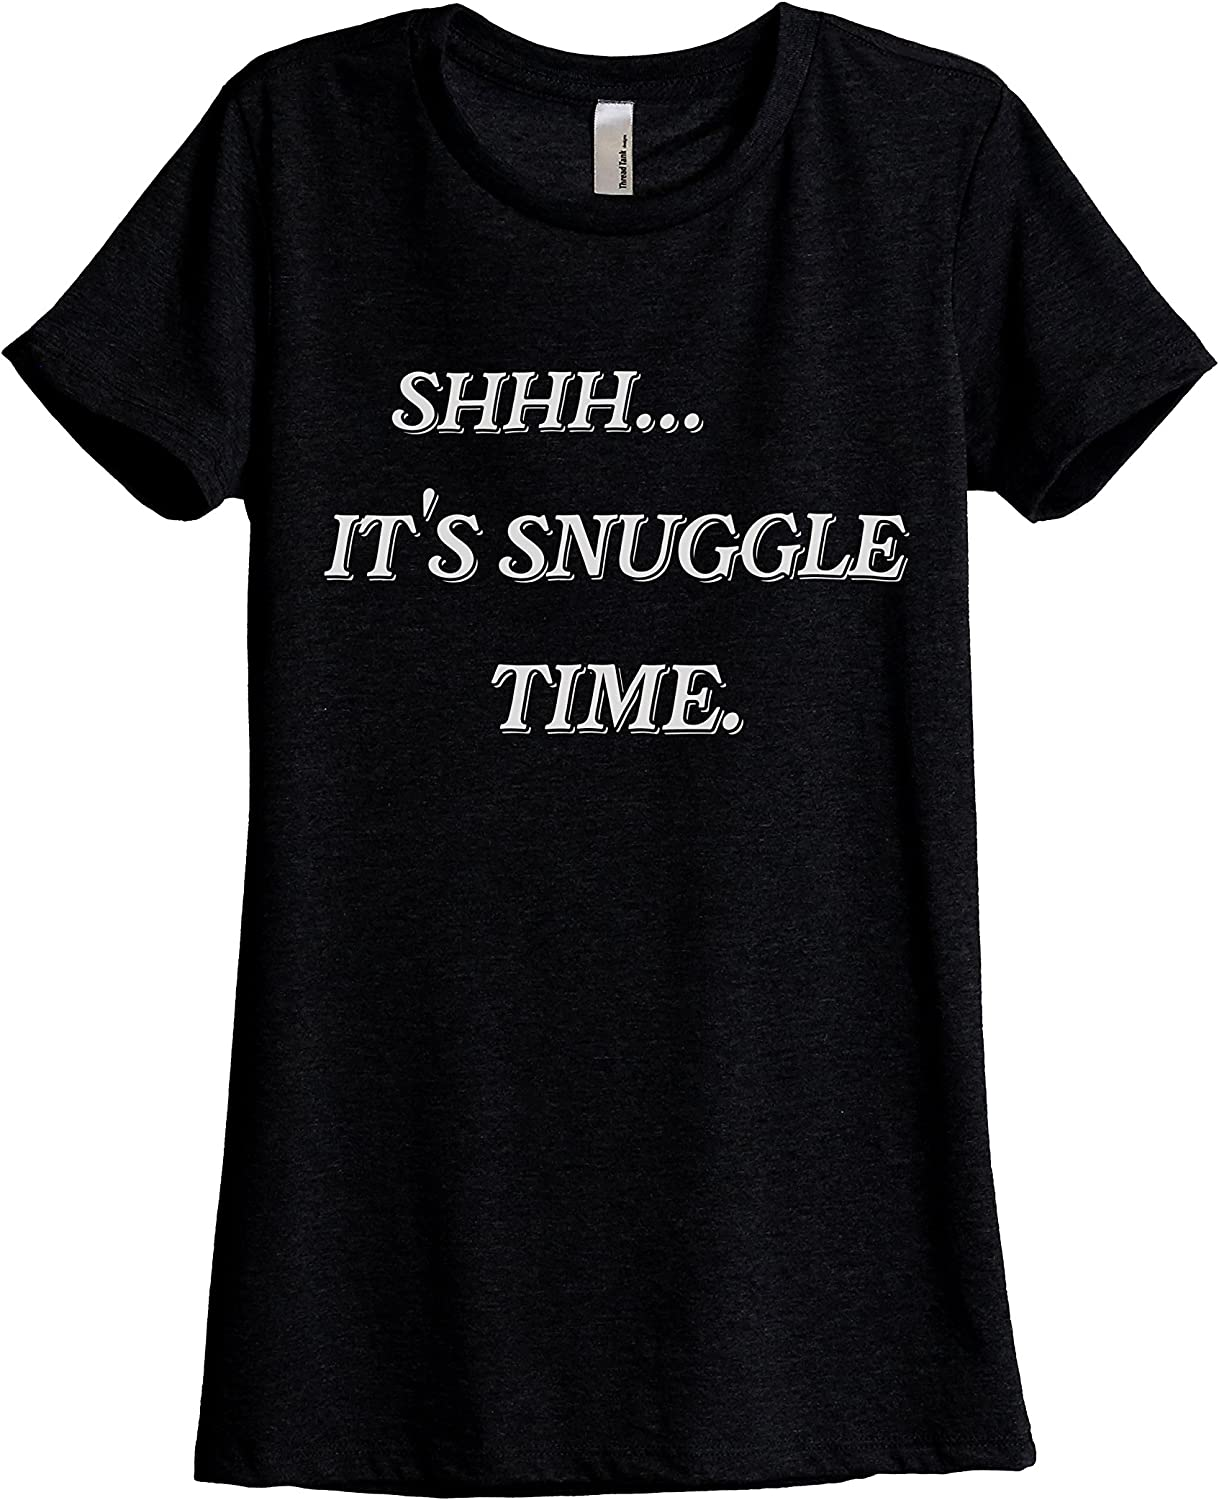 Shhh It's Snuggle Time Women's Fashion Relaxed T-Shirt Tee Heather Black